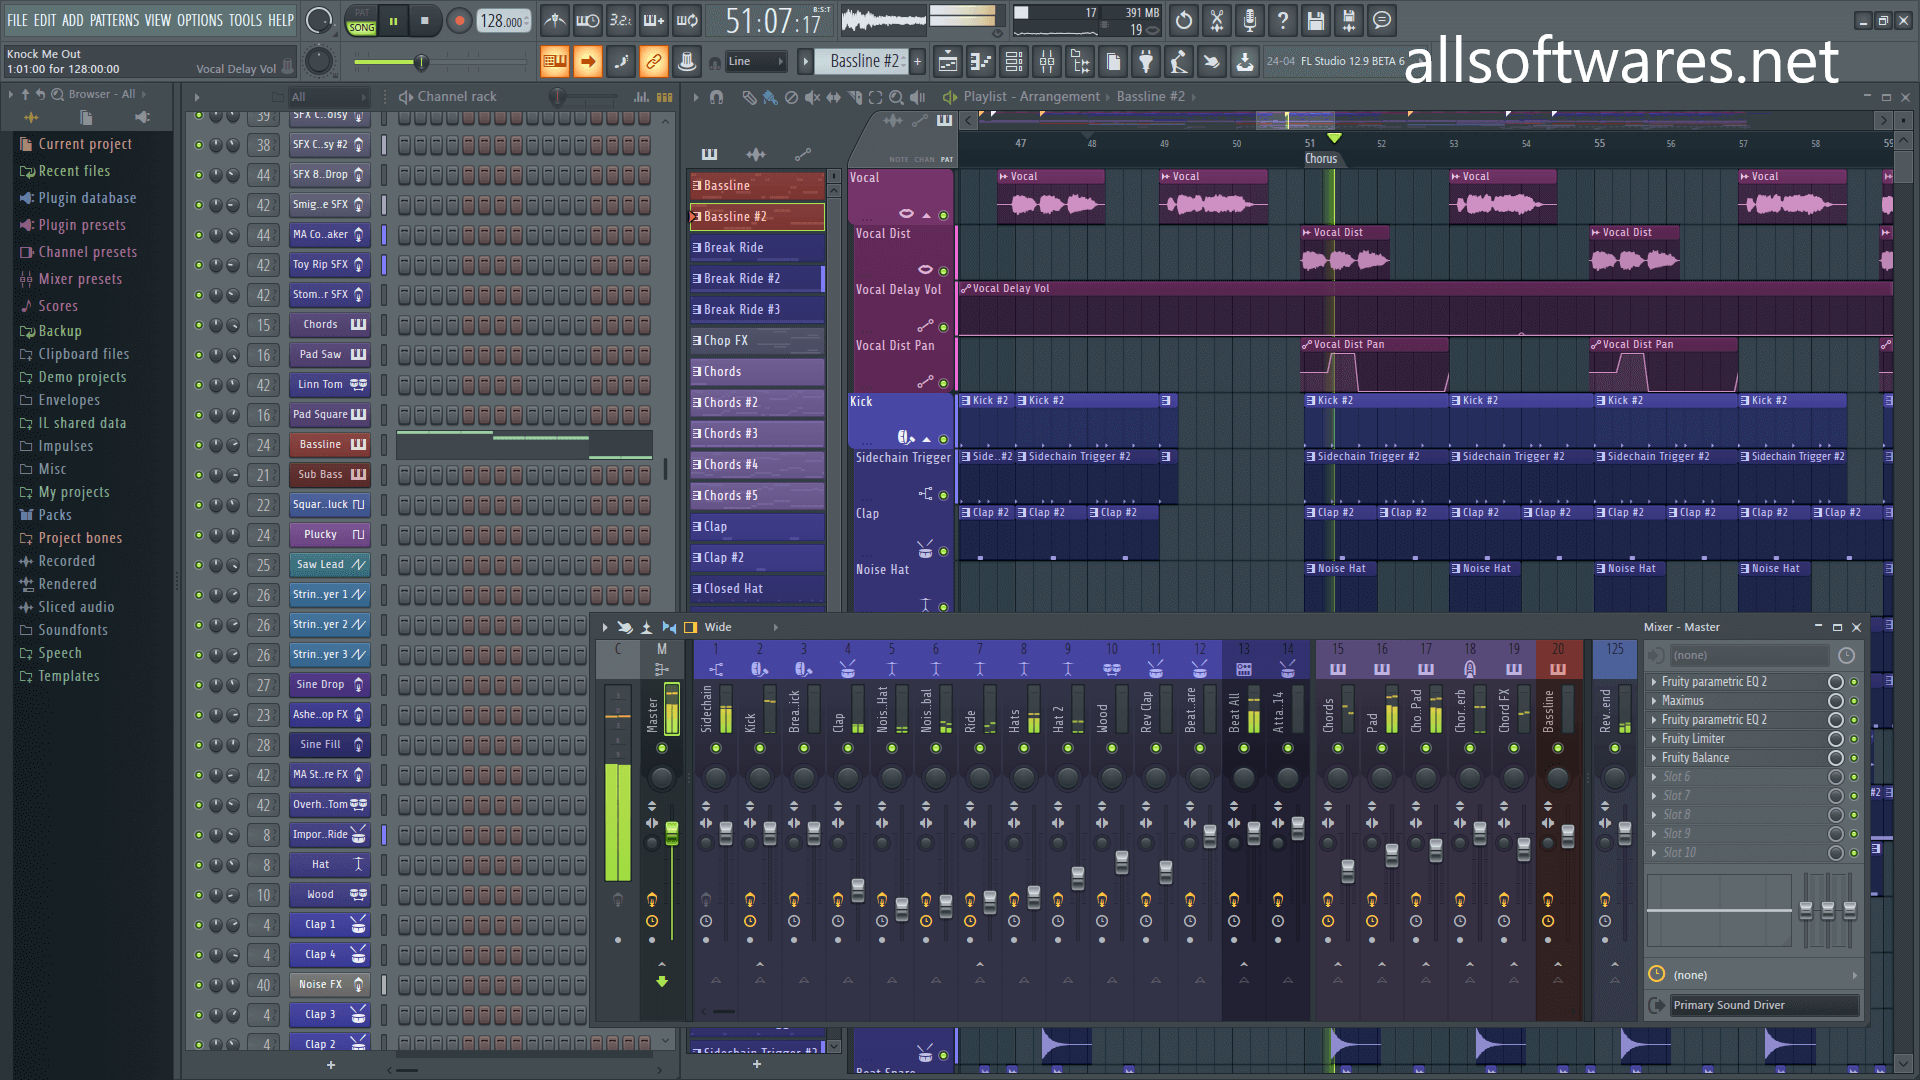 FL Studio 20.7.3 Crack With Key Full Free Download [2021]